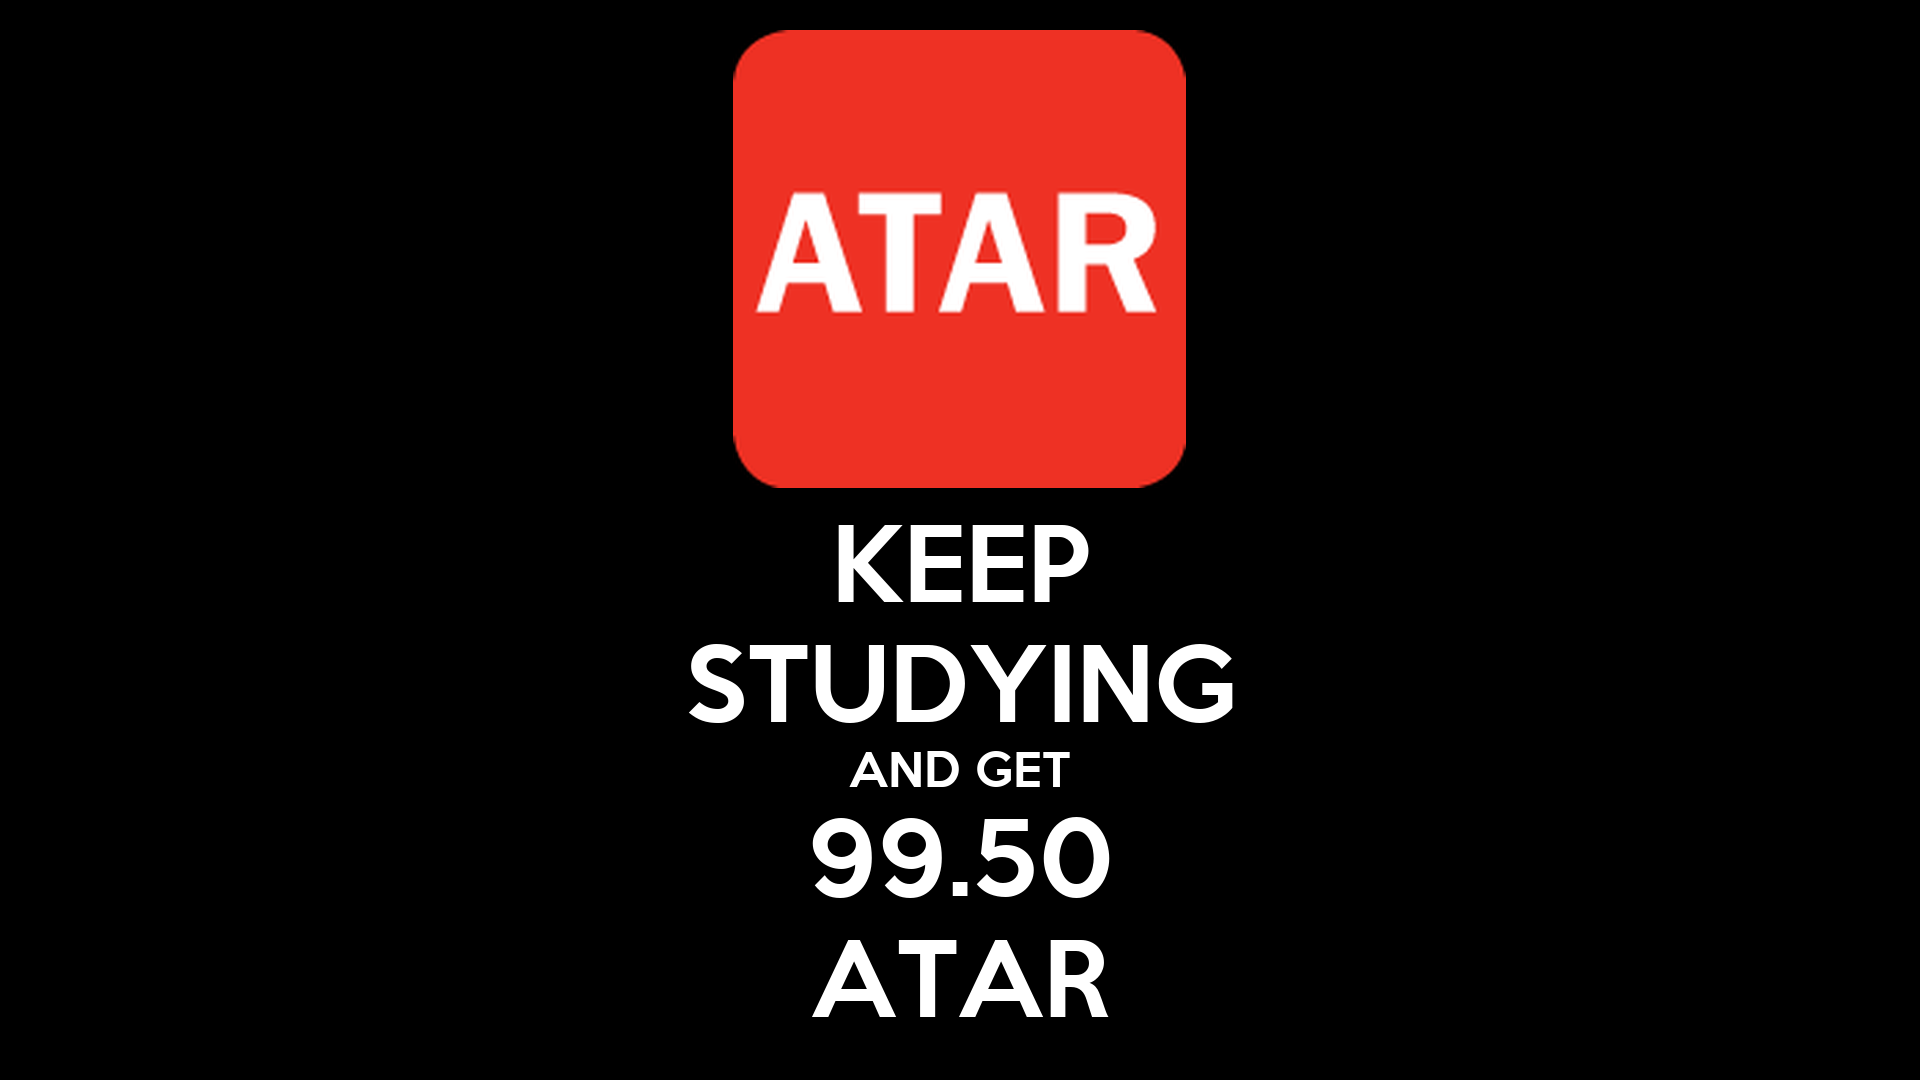 Keep Studying Wallpaper Keep Studying And Get 99.50